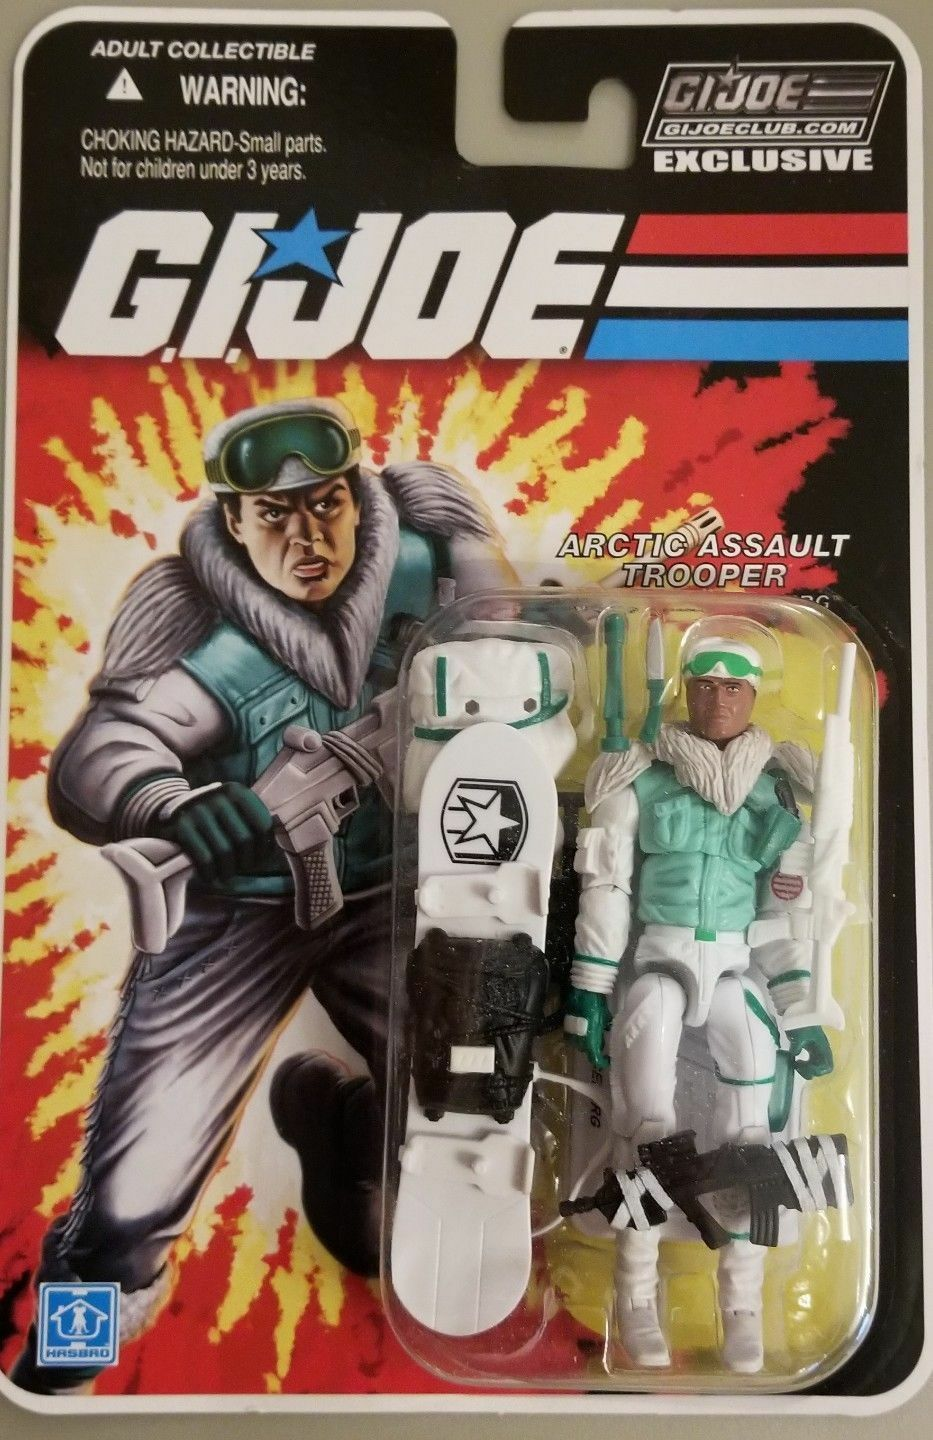 G.I.JOE EXKLUSIVE KOLLECTORS CLUB  ICEBERG, ARCTIC ASAULT TROOPER